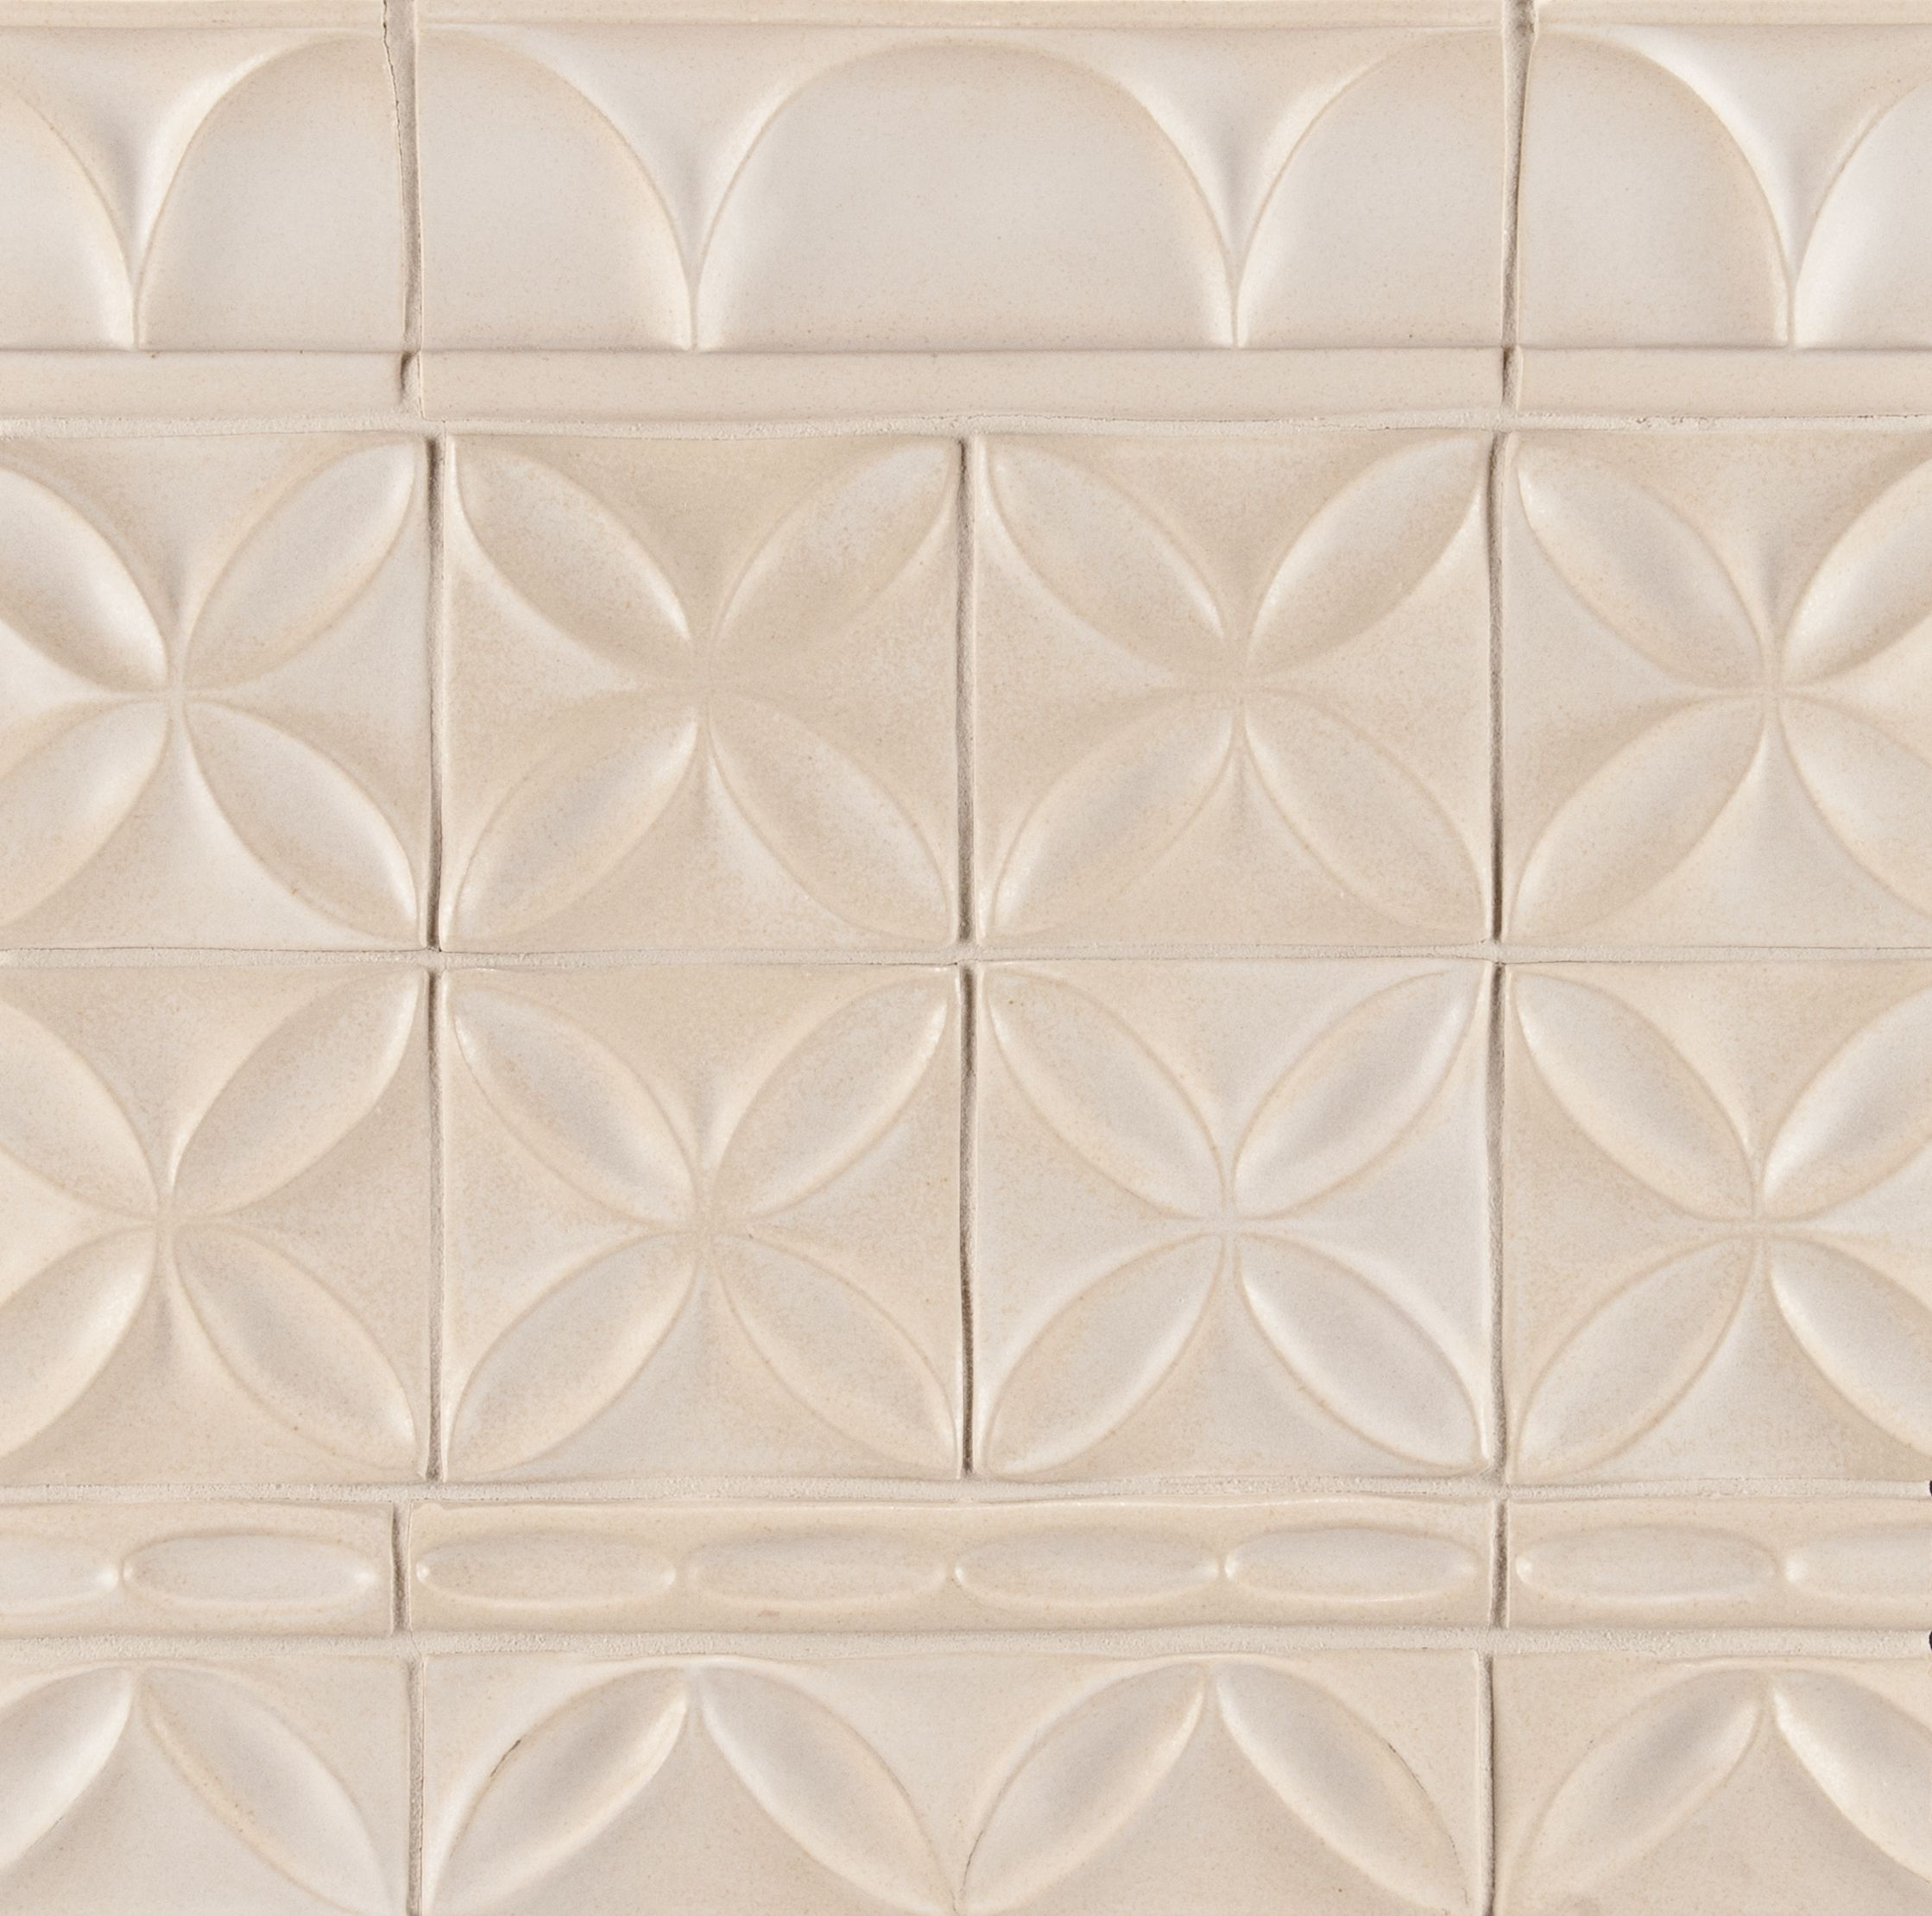 Ann sacks circa 4 x 4 quatrefoil ceramic decorative tile and 1 12 ann sacks circa 4 x 4 quatrefoil ceramic decorative tile and 1 1 dailygadgetfo Image collections